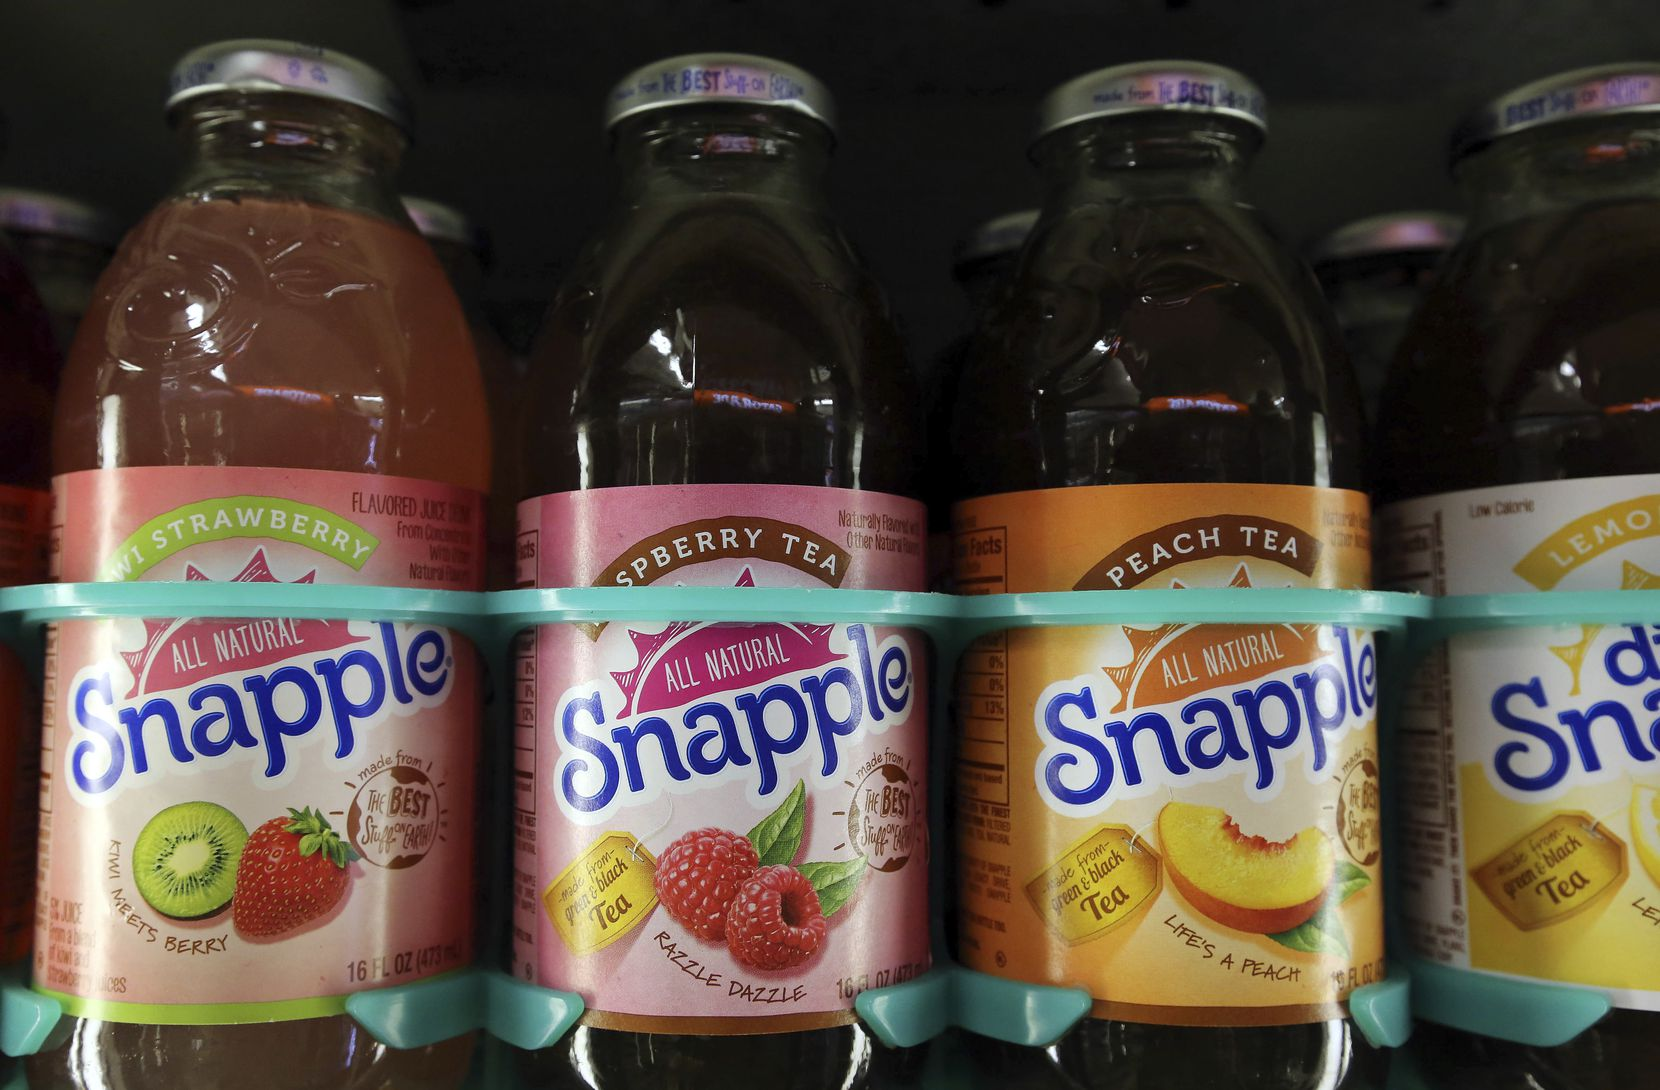 Bottles of Snapple in a cooler at Quality Cash Market in Concord, N.H. In a deal announced Monday, Jan. 29, 2018, Keurig will buy Dr. Pepper Snapple Group, creating a beverage giant with about $11 billion in annual sales.